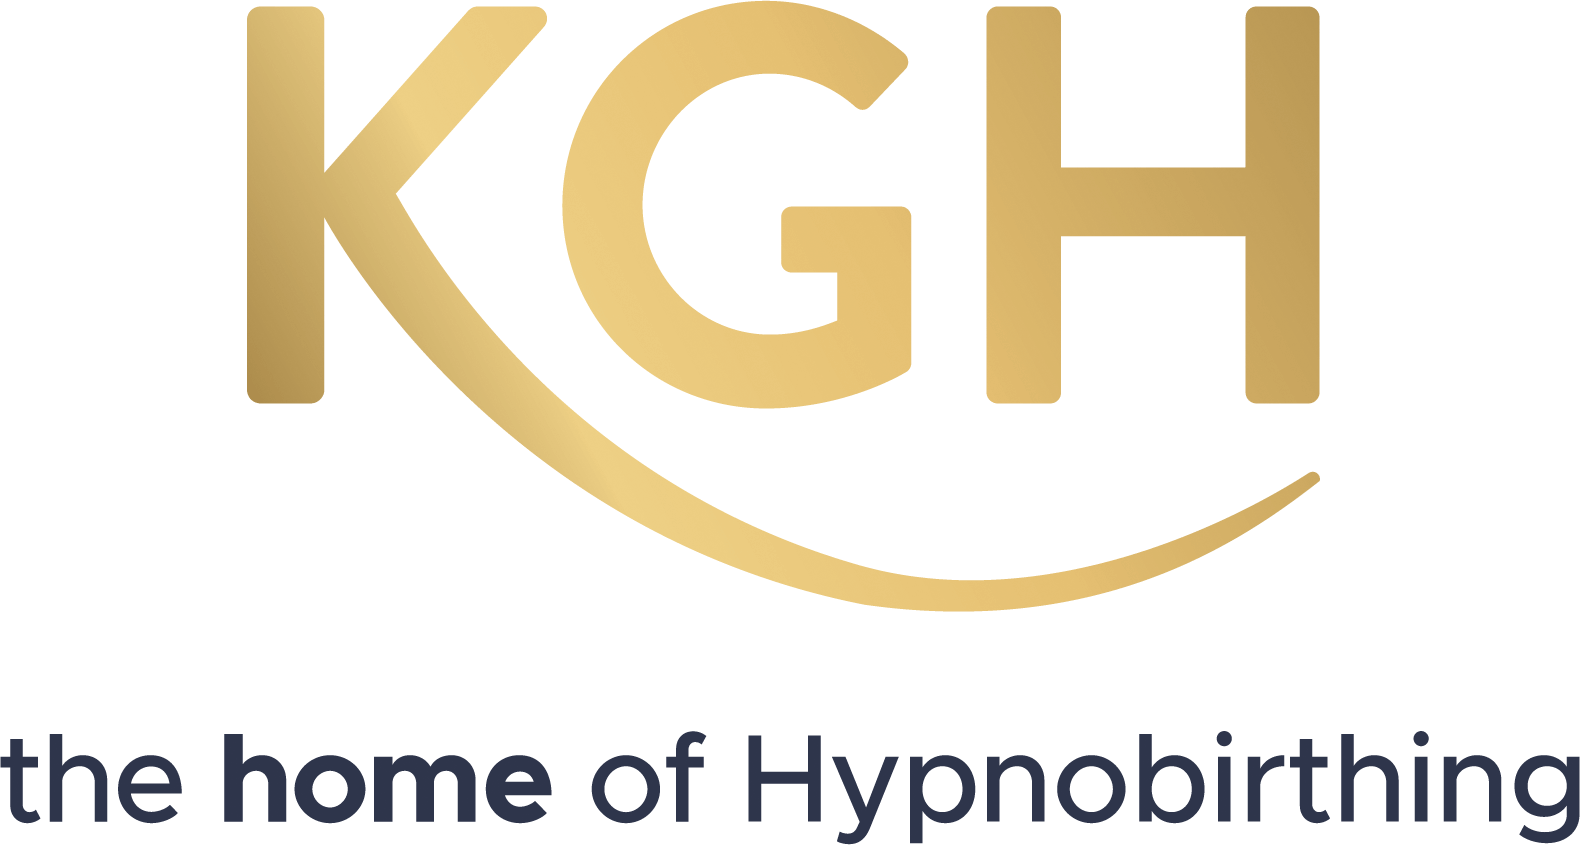 KGH - the home of hypnobirthing